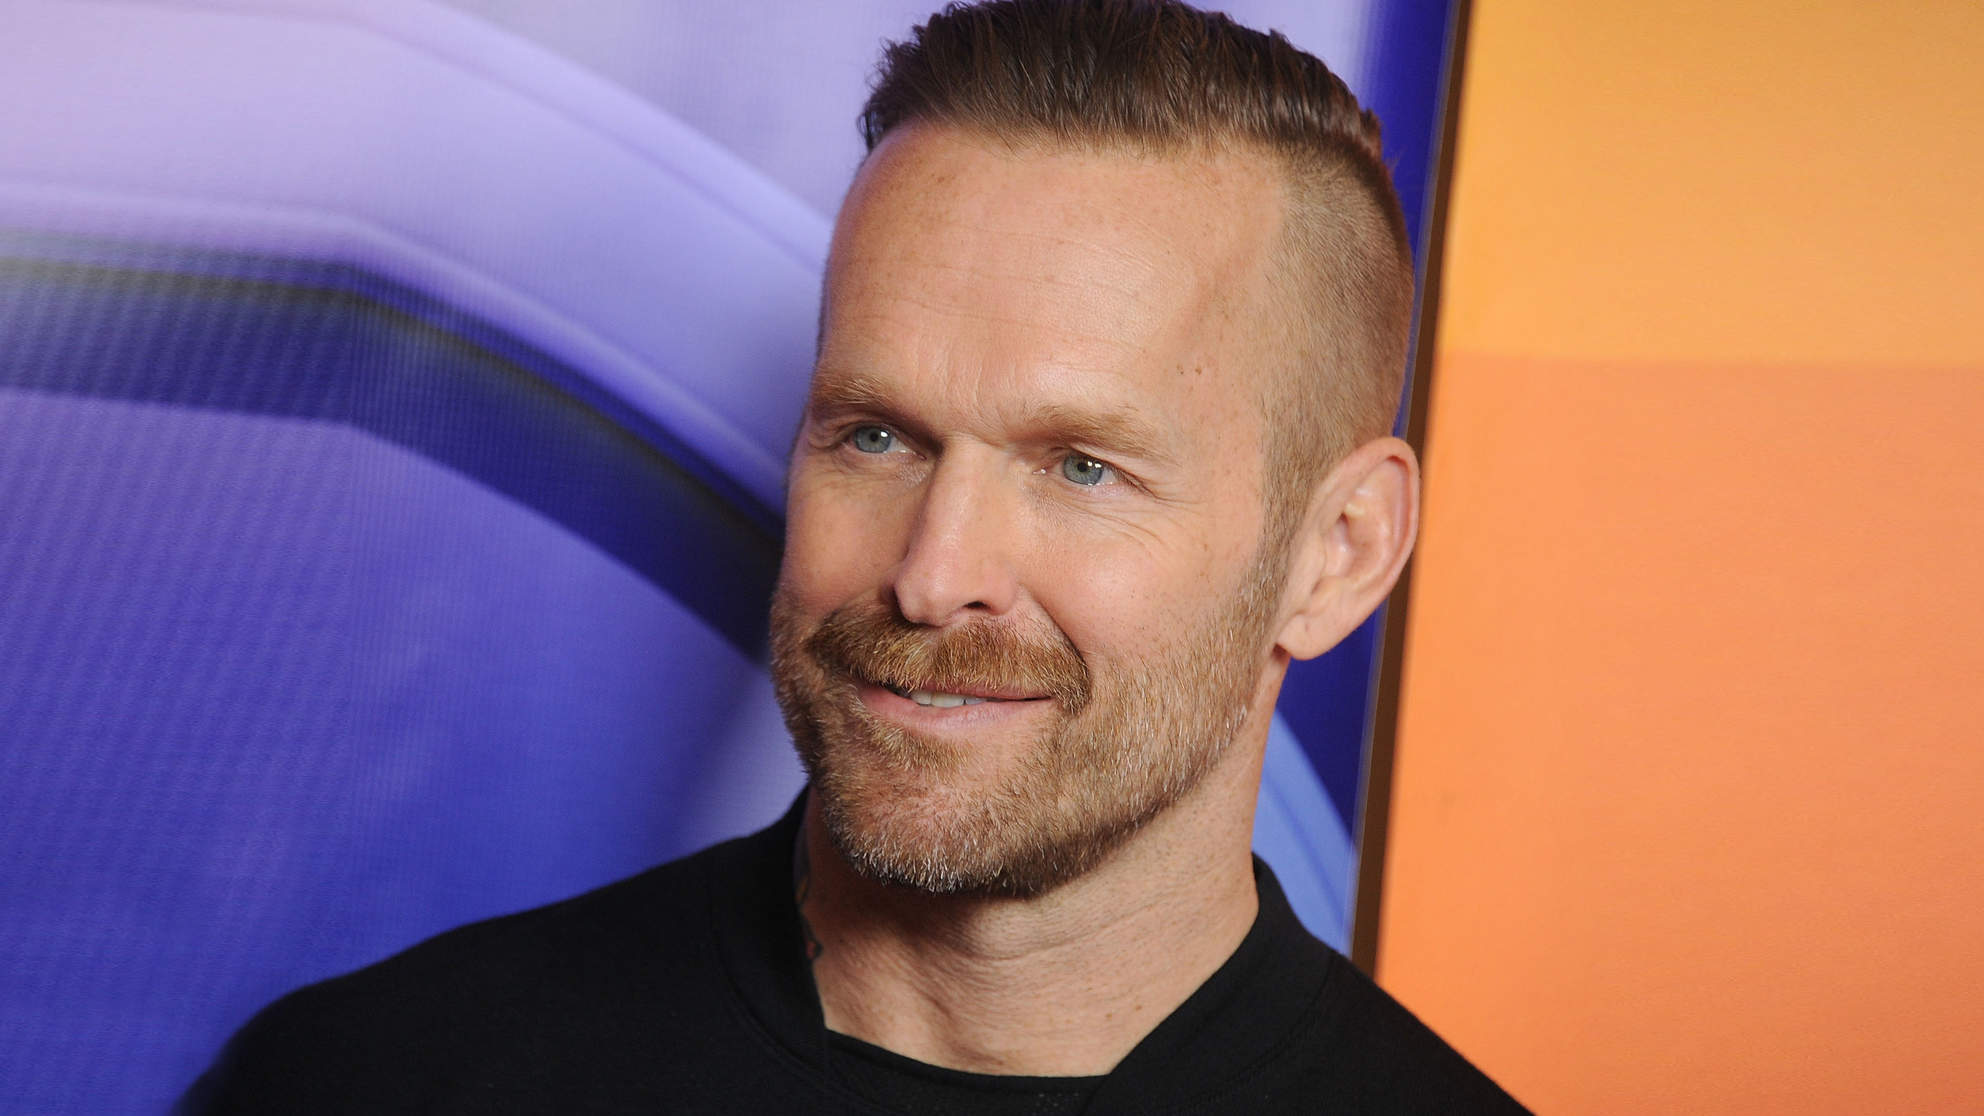 Bob Harper Shares 'Extremely Private' Photo of Himself in a Coma a Year After His Heart Attack